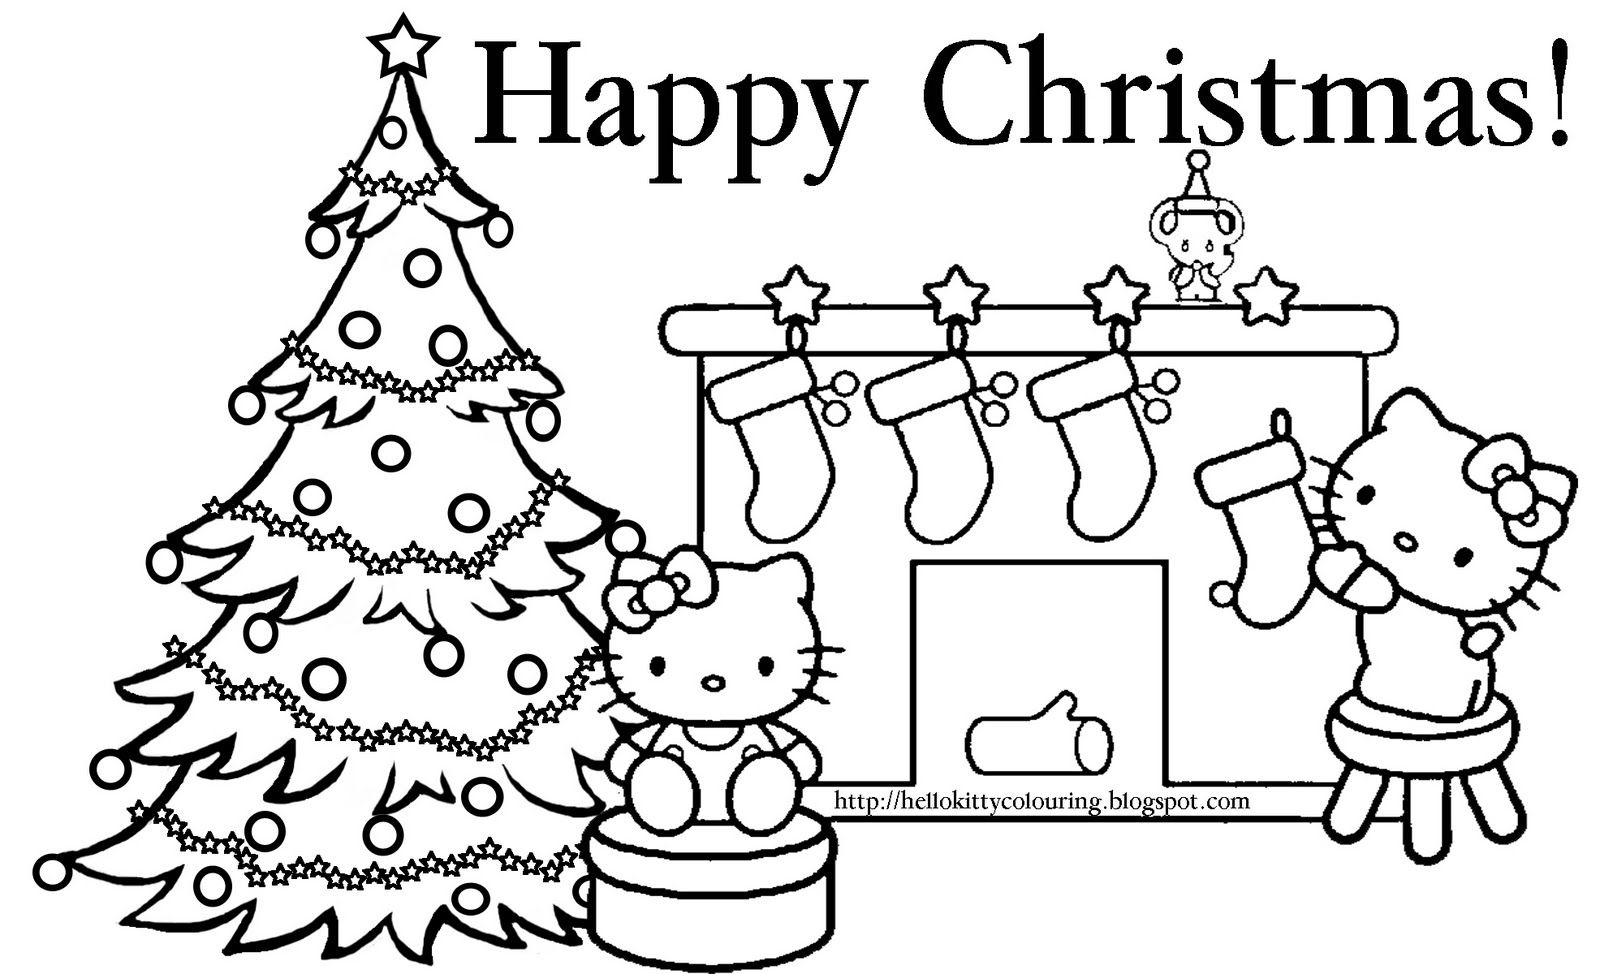 Christmas Kitten Coloring Pages With HELLO KITTY COLORING PAGES Pinterest Hello Kitty